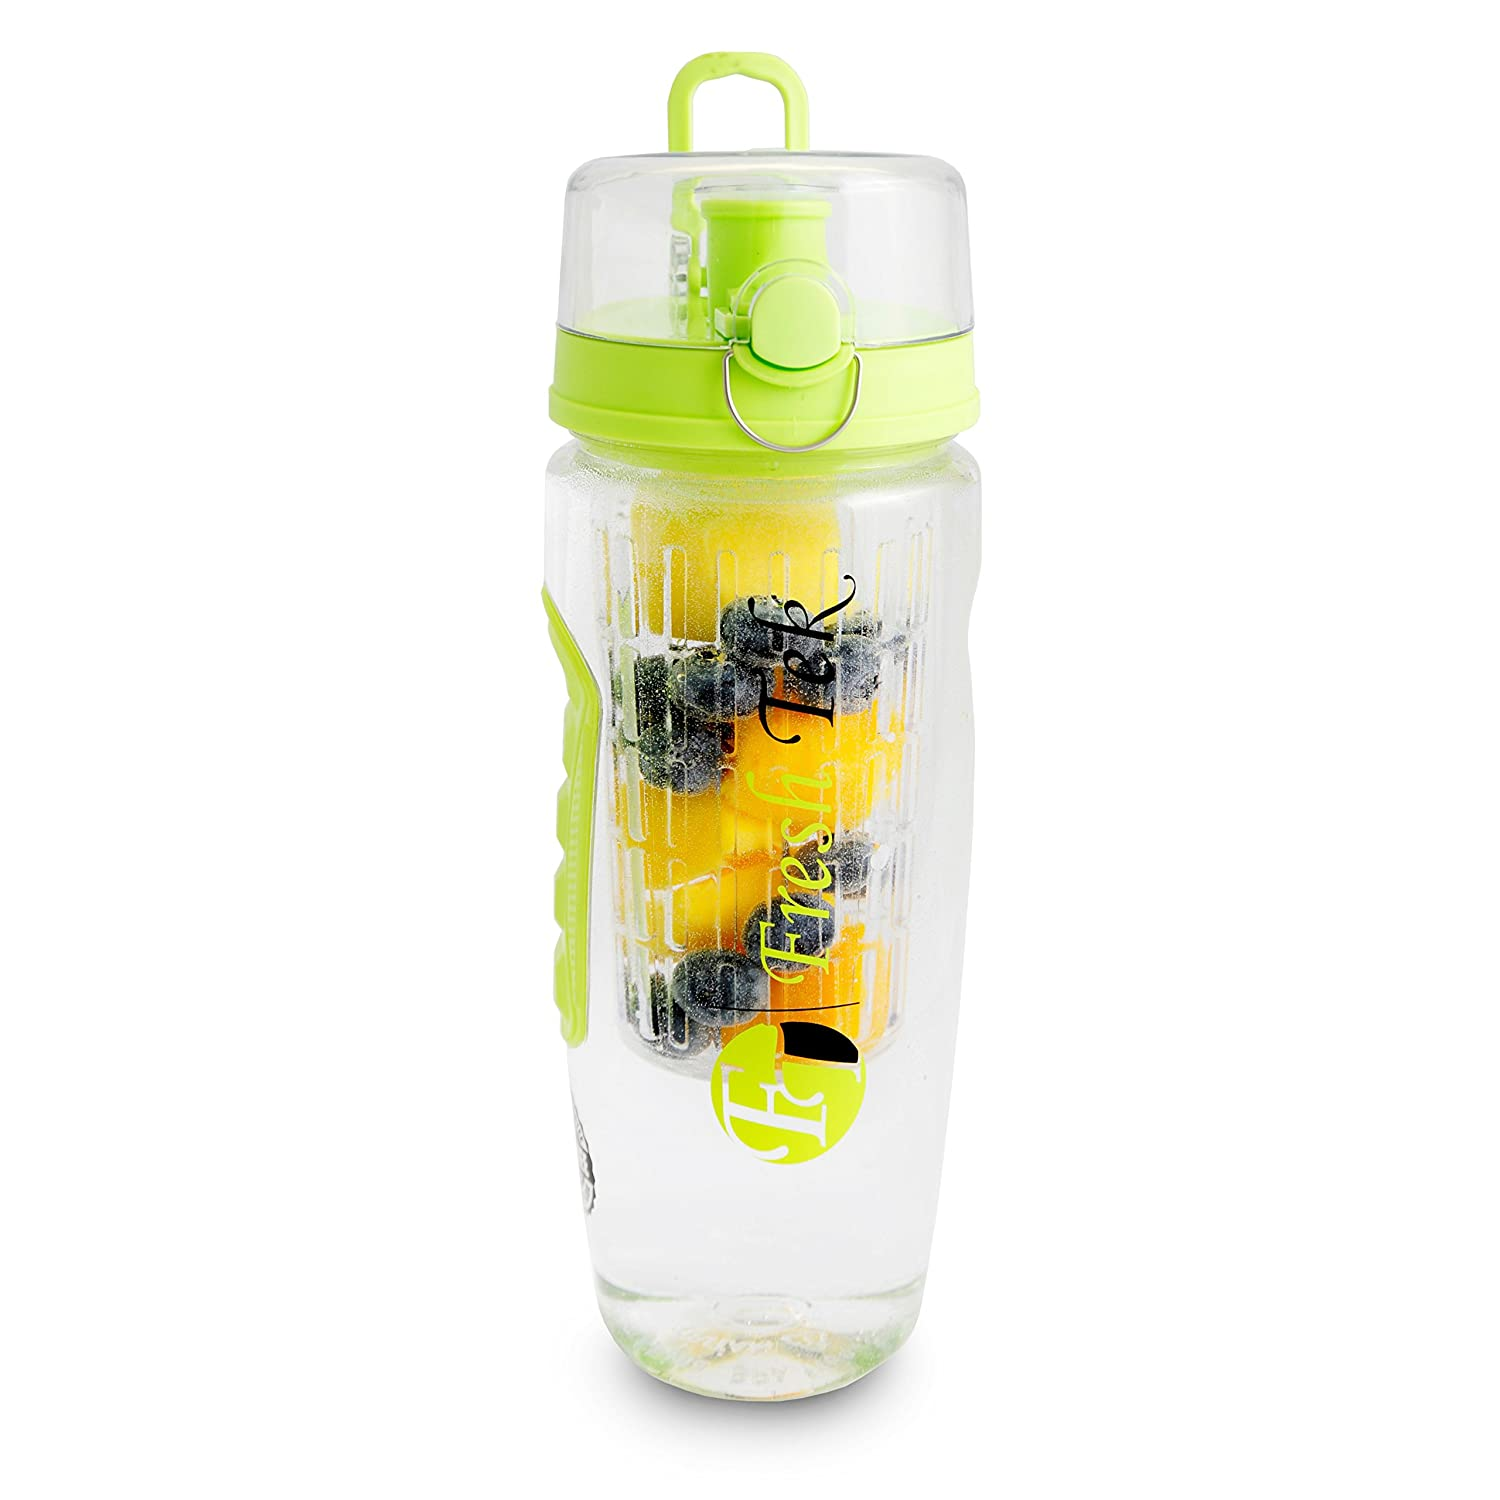 FreshTek Largest Infuser Sport Water Bottle